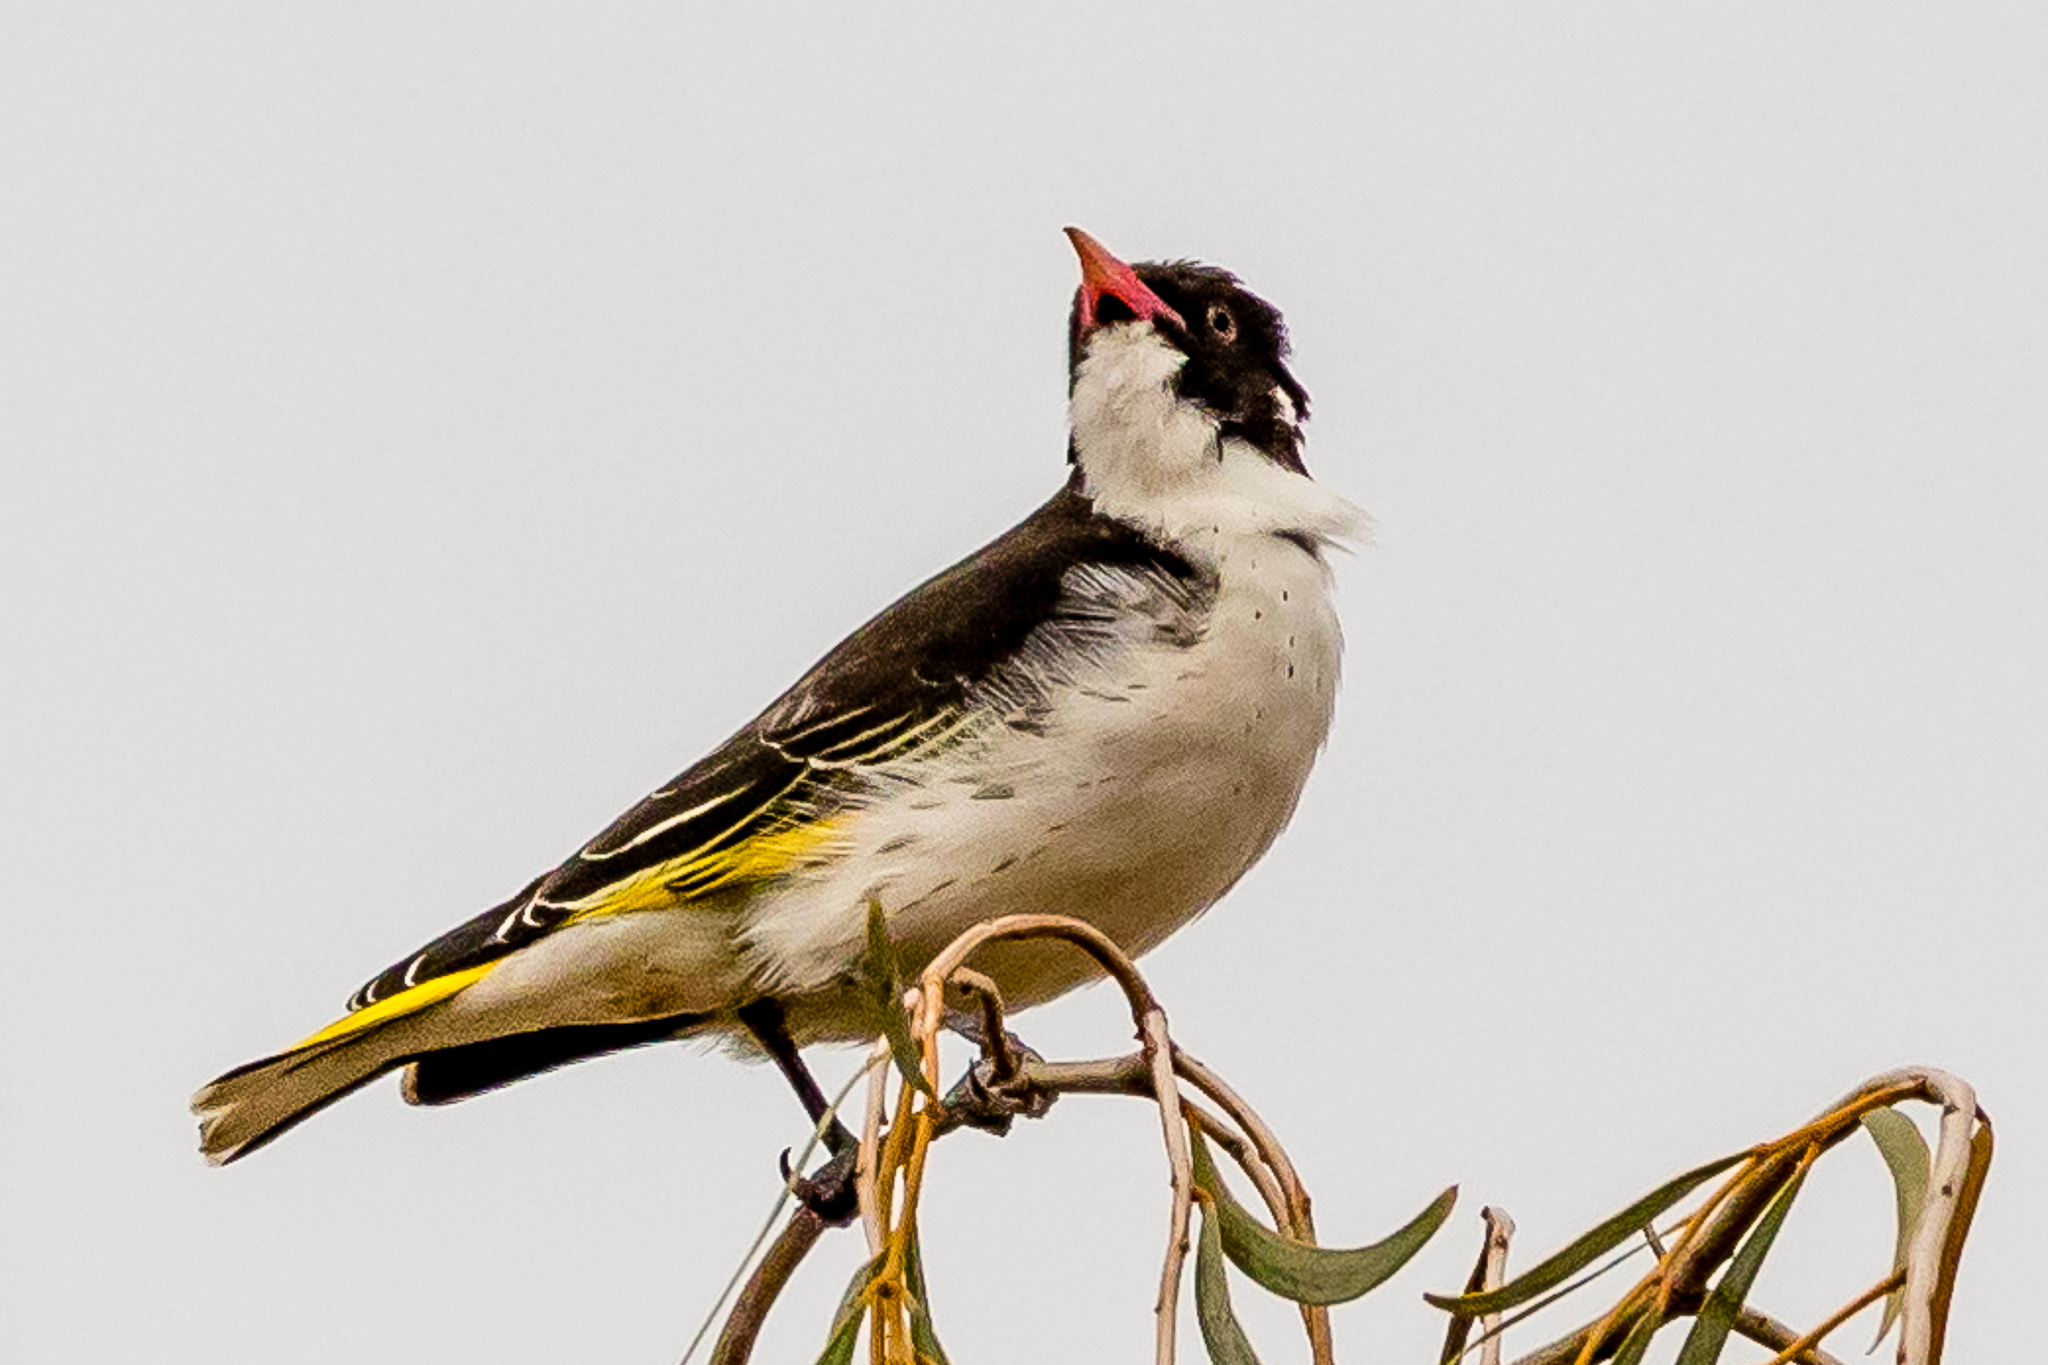 Painted Honeyeaters are listed as a vulnerable species. Their favourite food, fruit of the grey Mistletoe, is in short supply. This bird was photographed on the verge of a country road in remnant bush.